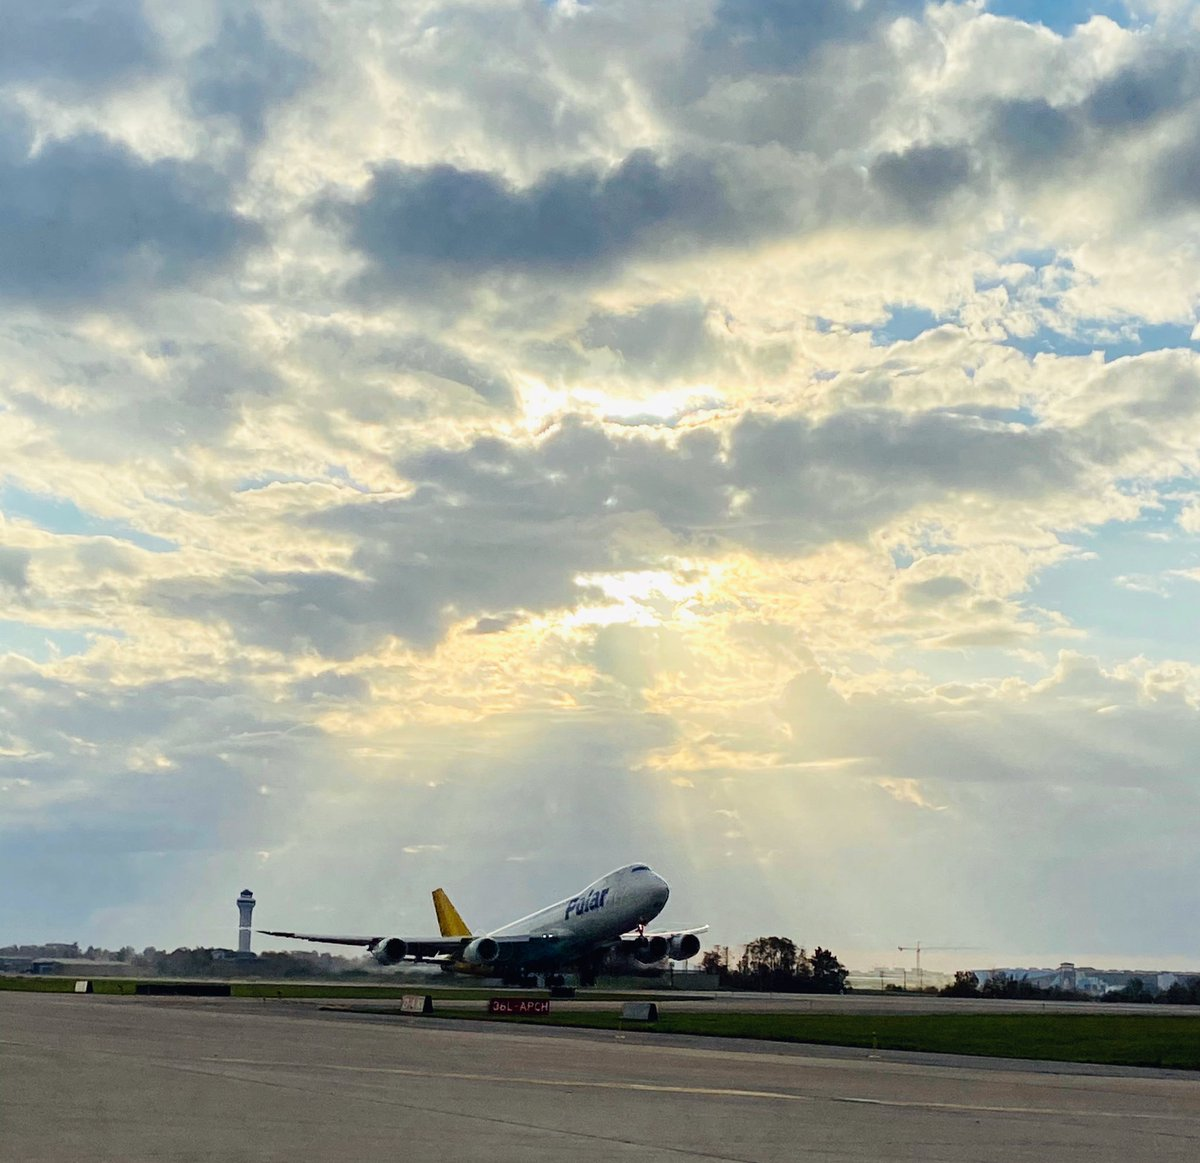 Cargo is always moving at CVG! ✈️   #CVGnext #airporttwitter https://t.co/1nxrbx63BE